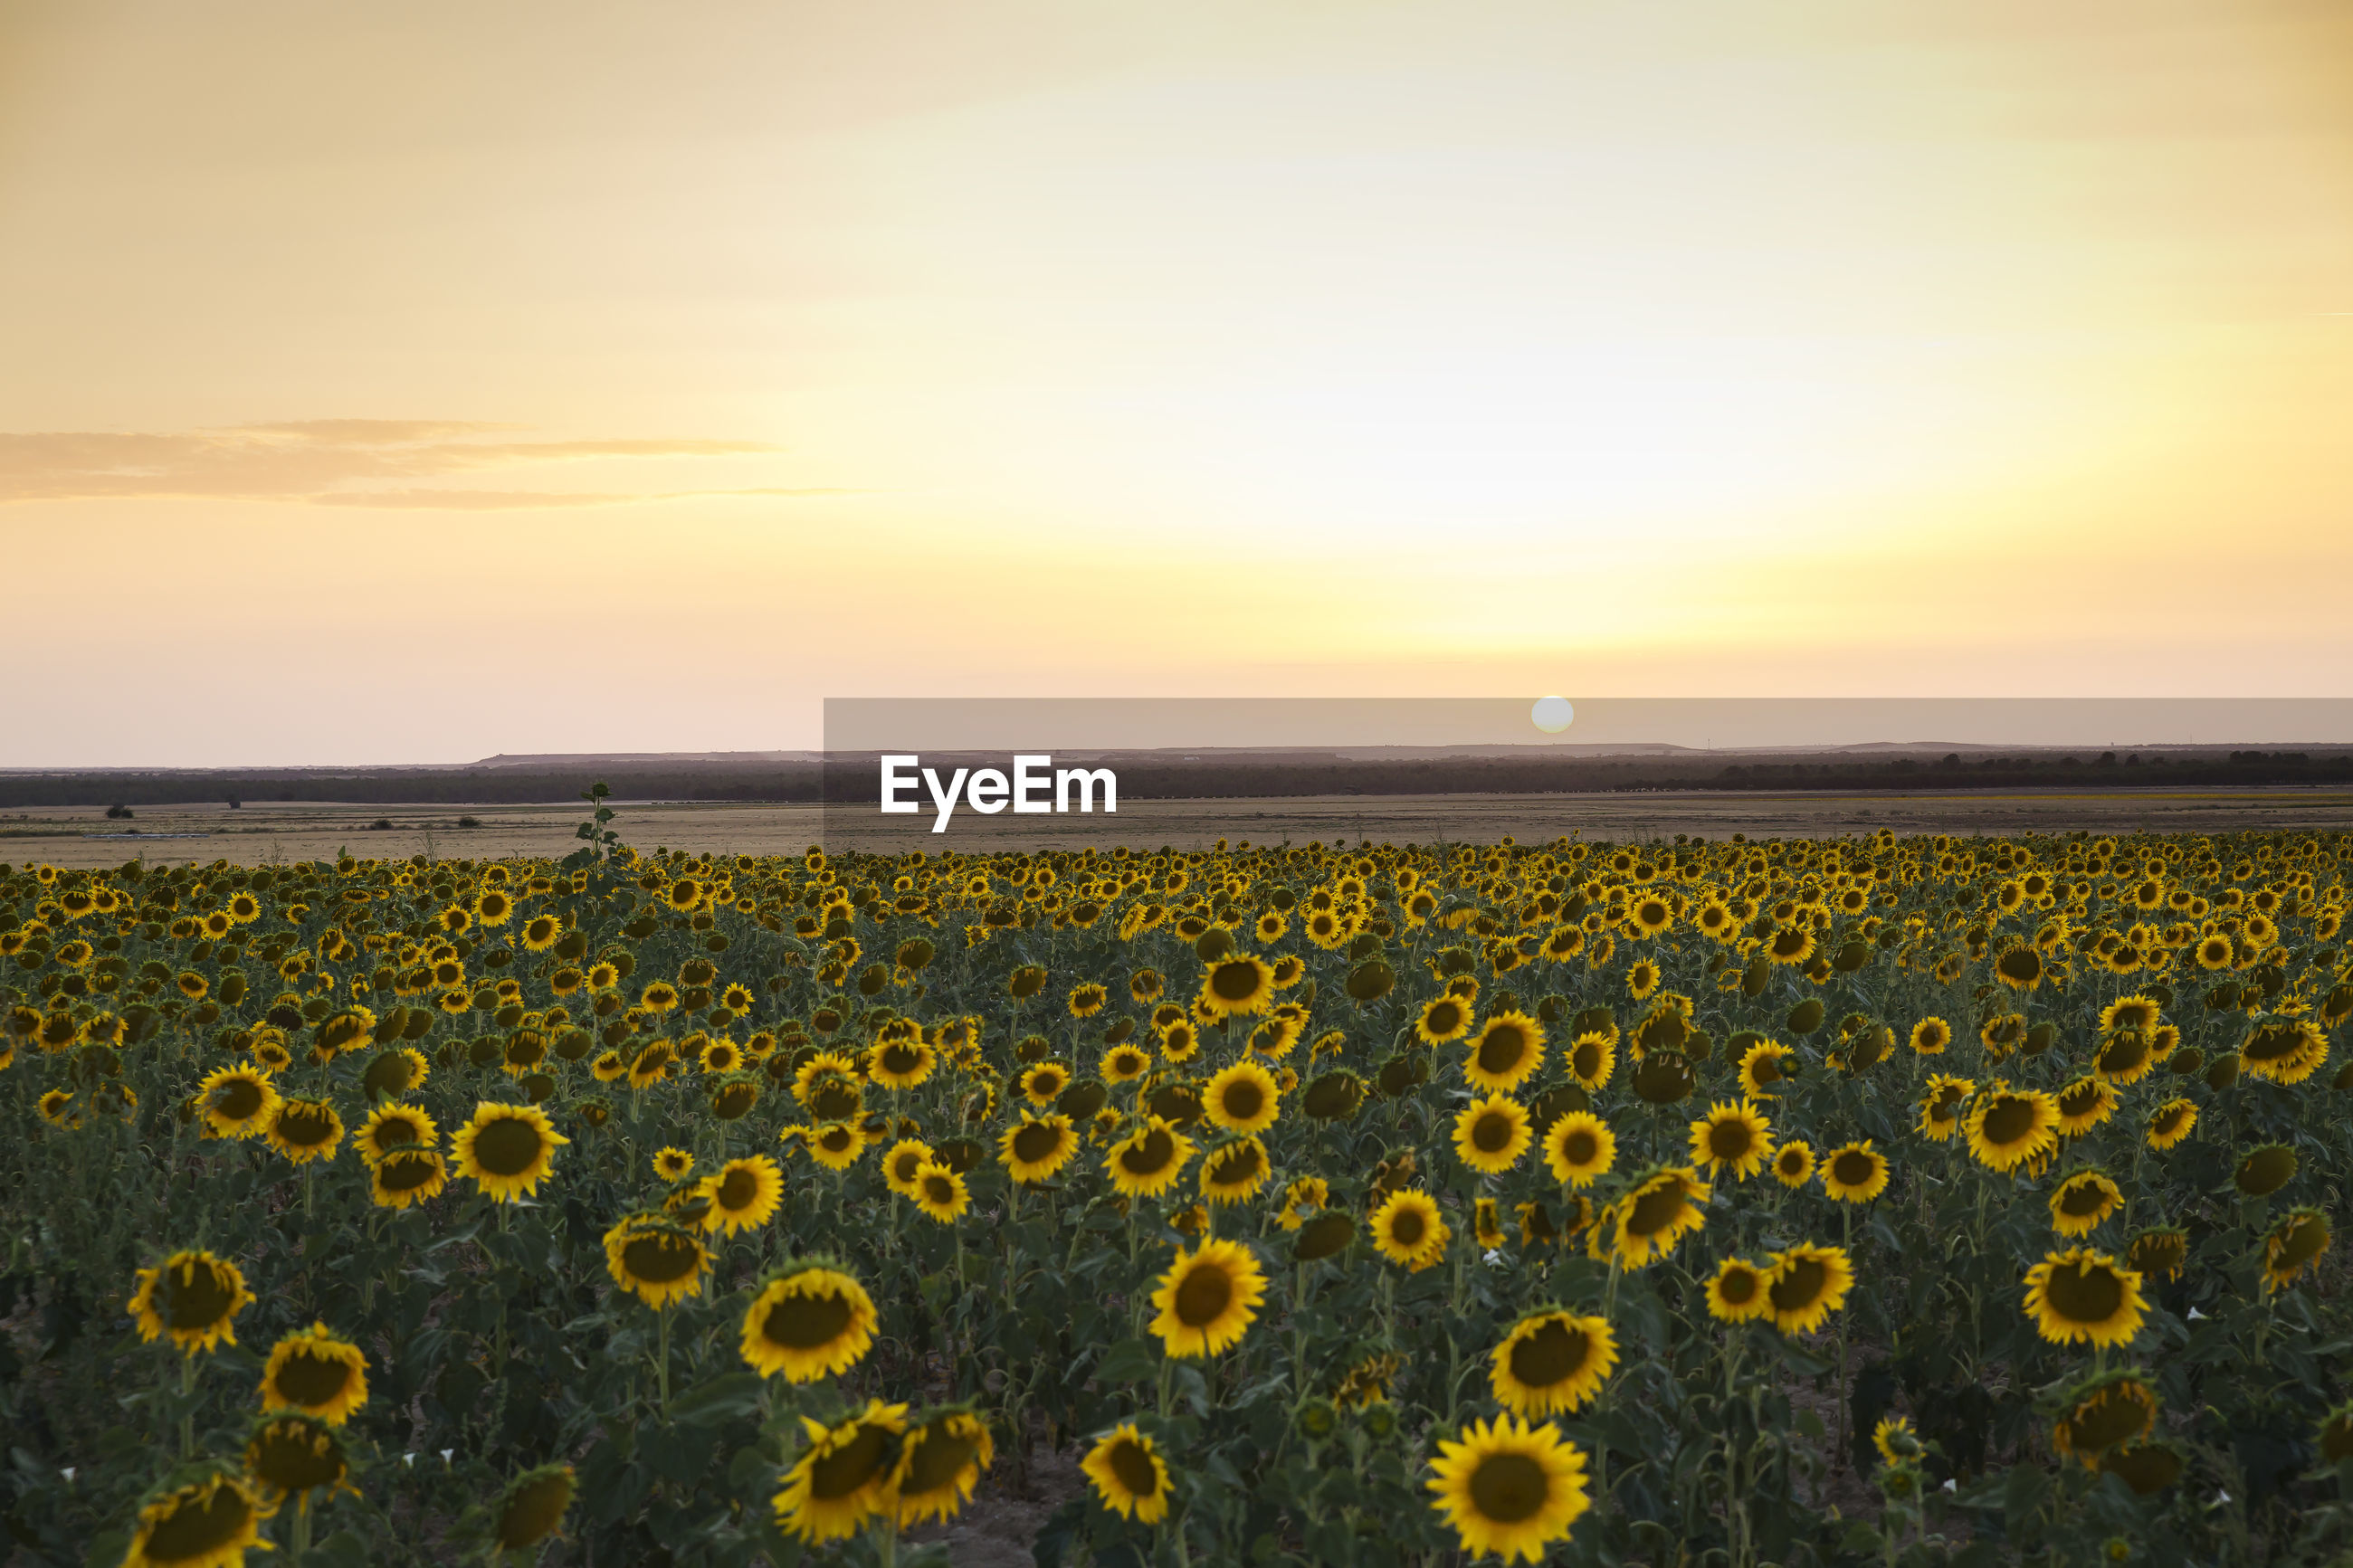 SCENIC VIEW OF SUNFLOWER FIELD AT SUNSET